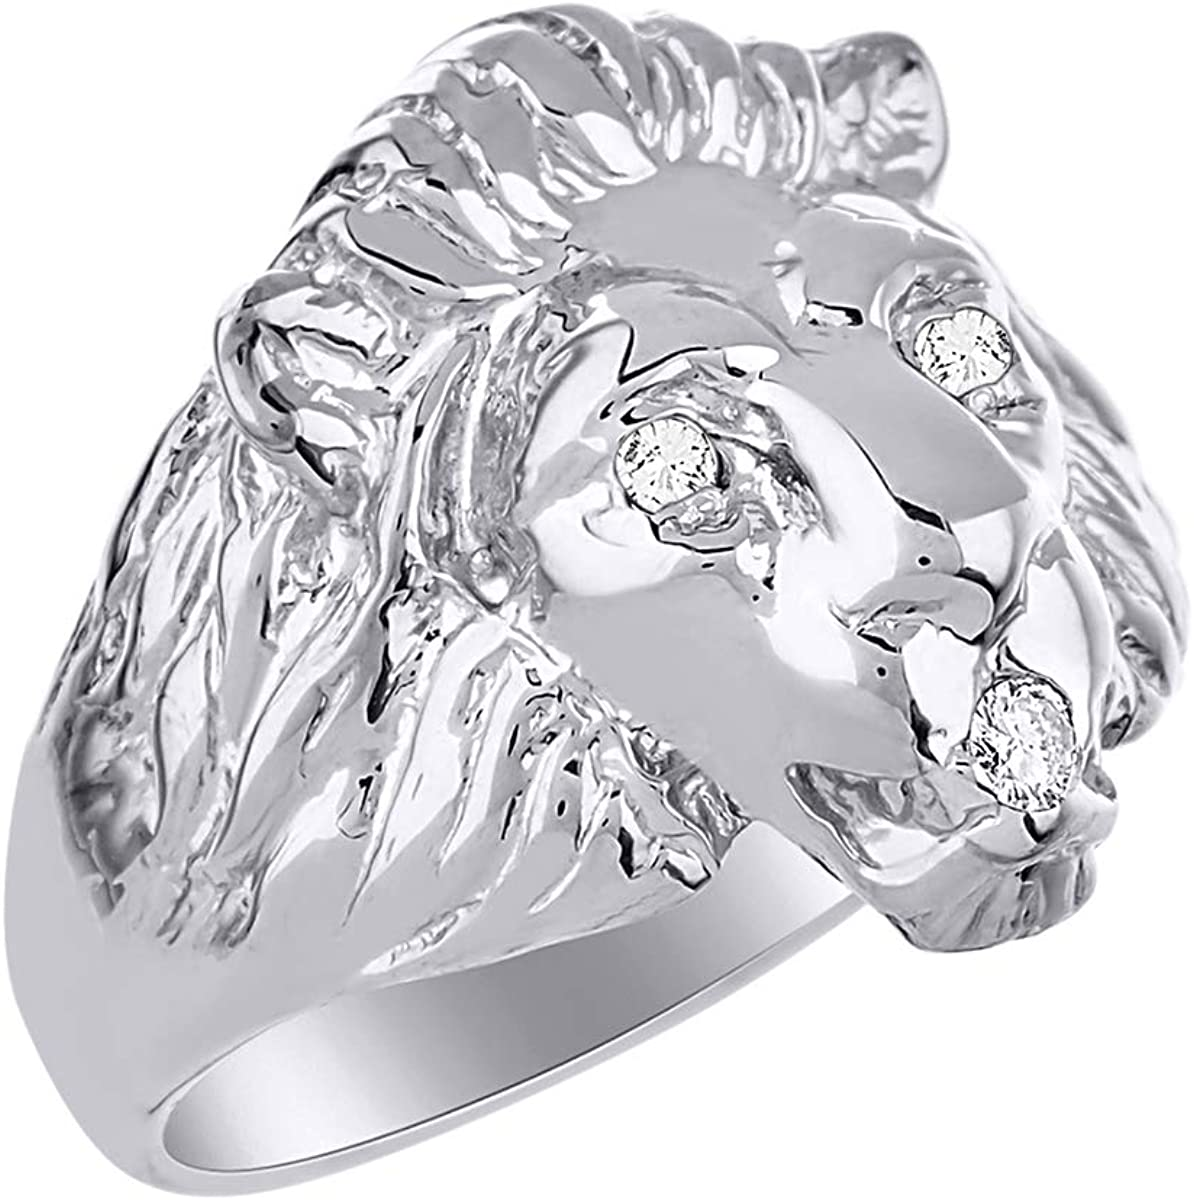 Lion Head Ring set with Genuine Diamonds in Mouth and Eyes set in Sterling Silver .925